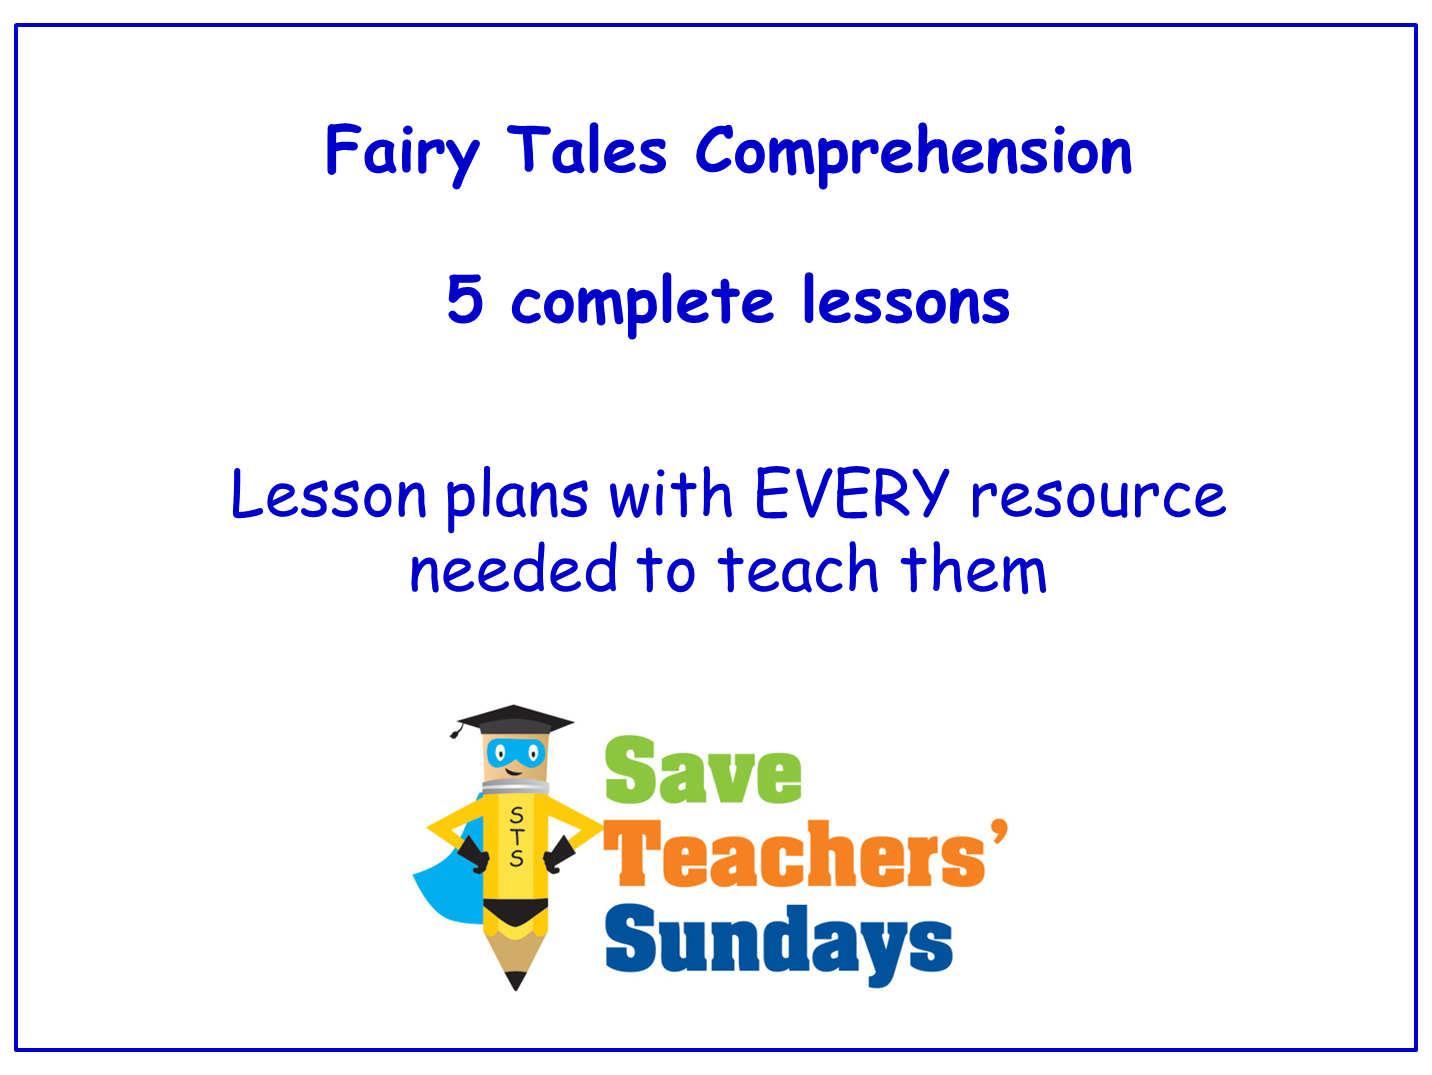 Fairy tales comprehension guided reading 4 levels of difficulty fairy tales comprehension guided reading 4 levels of difficulty 5 lessons by saveteacherssundays teaching resources tes robcynllc Image collections